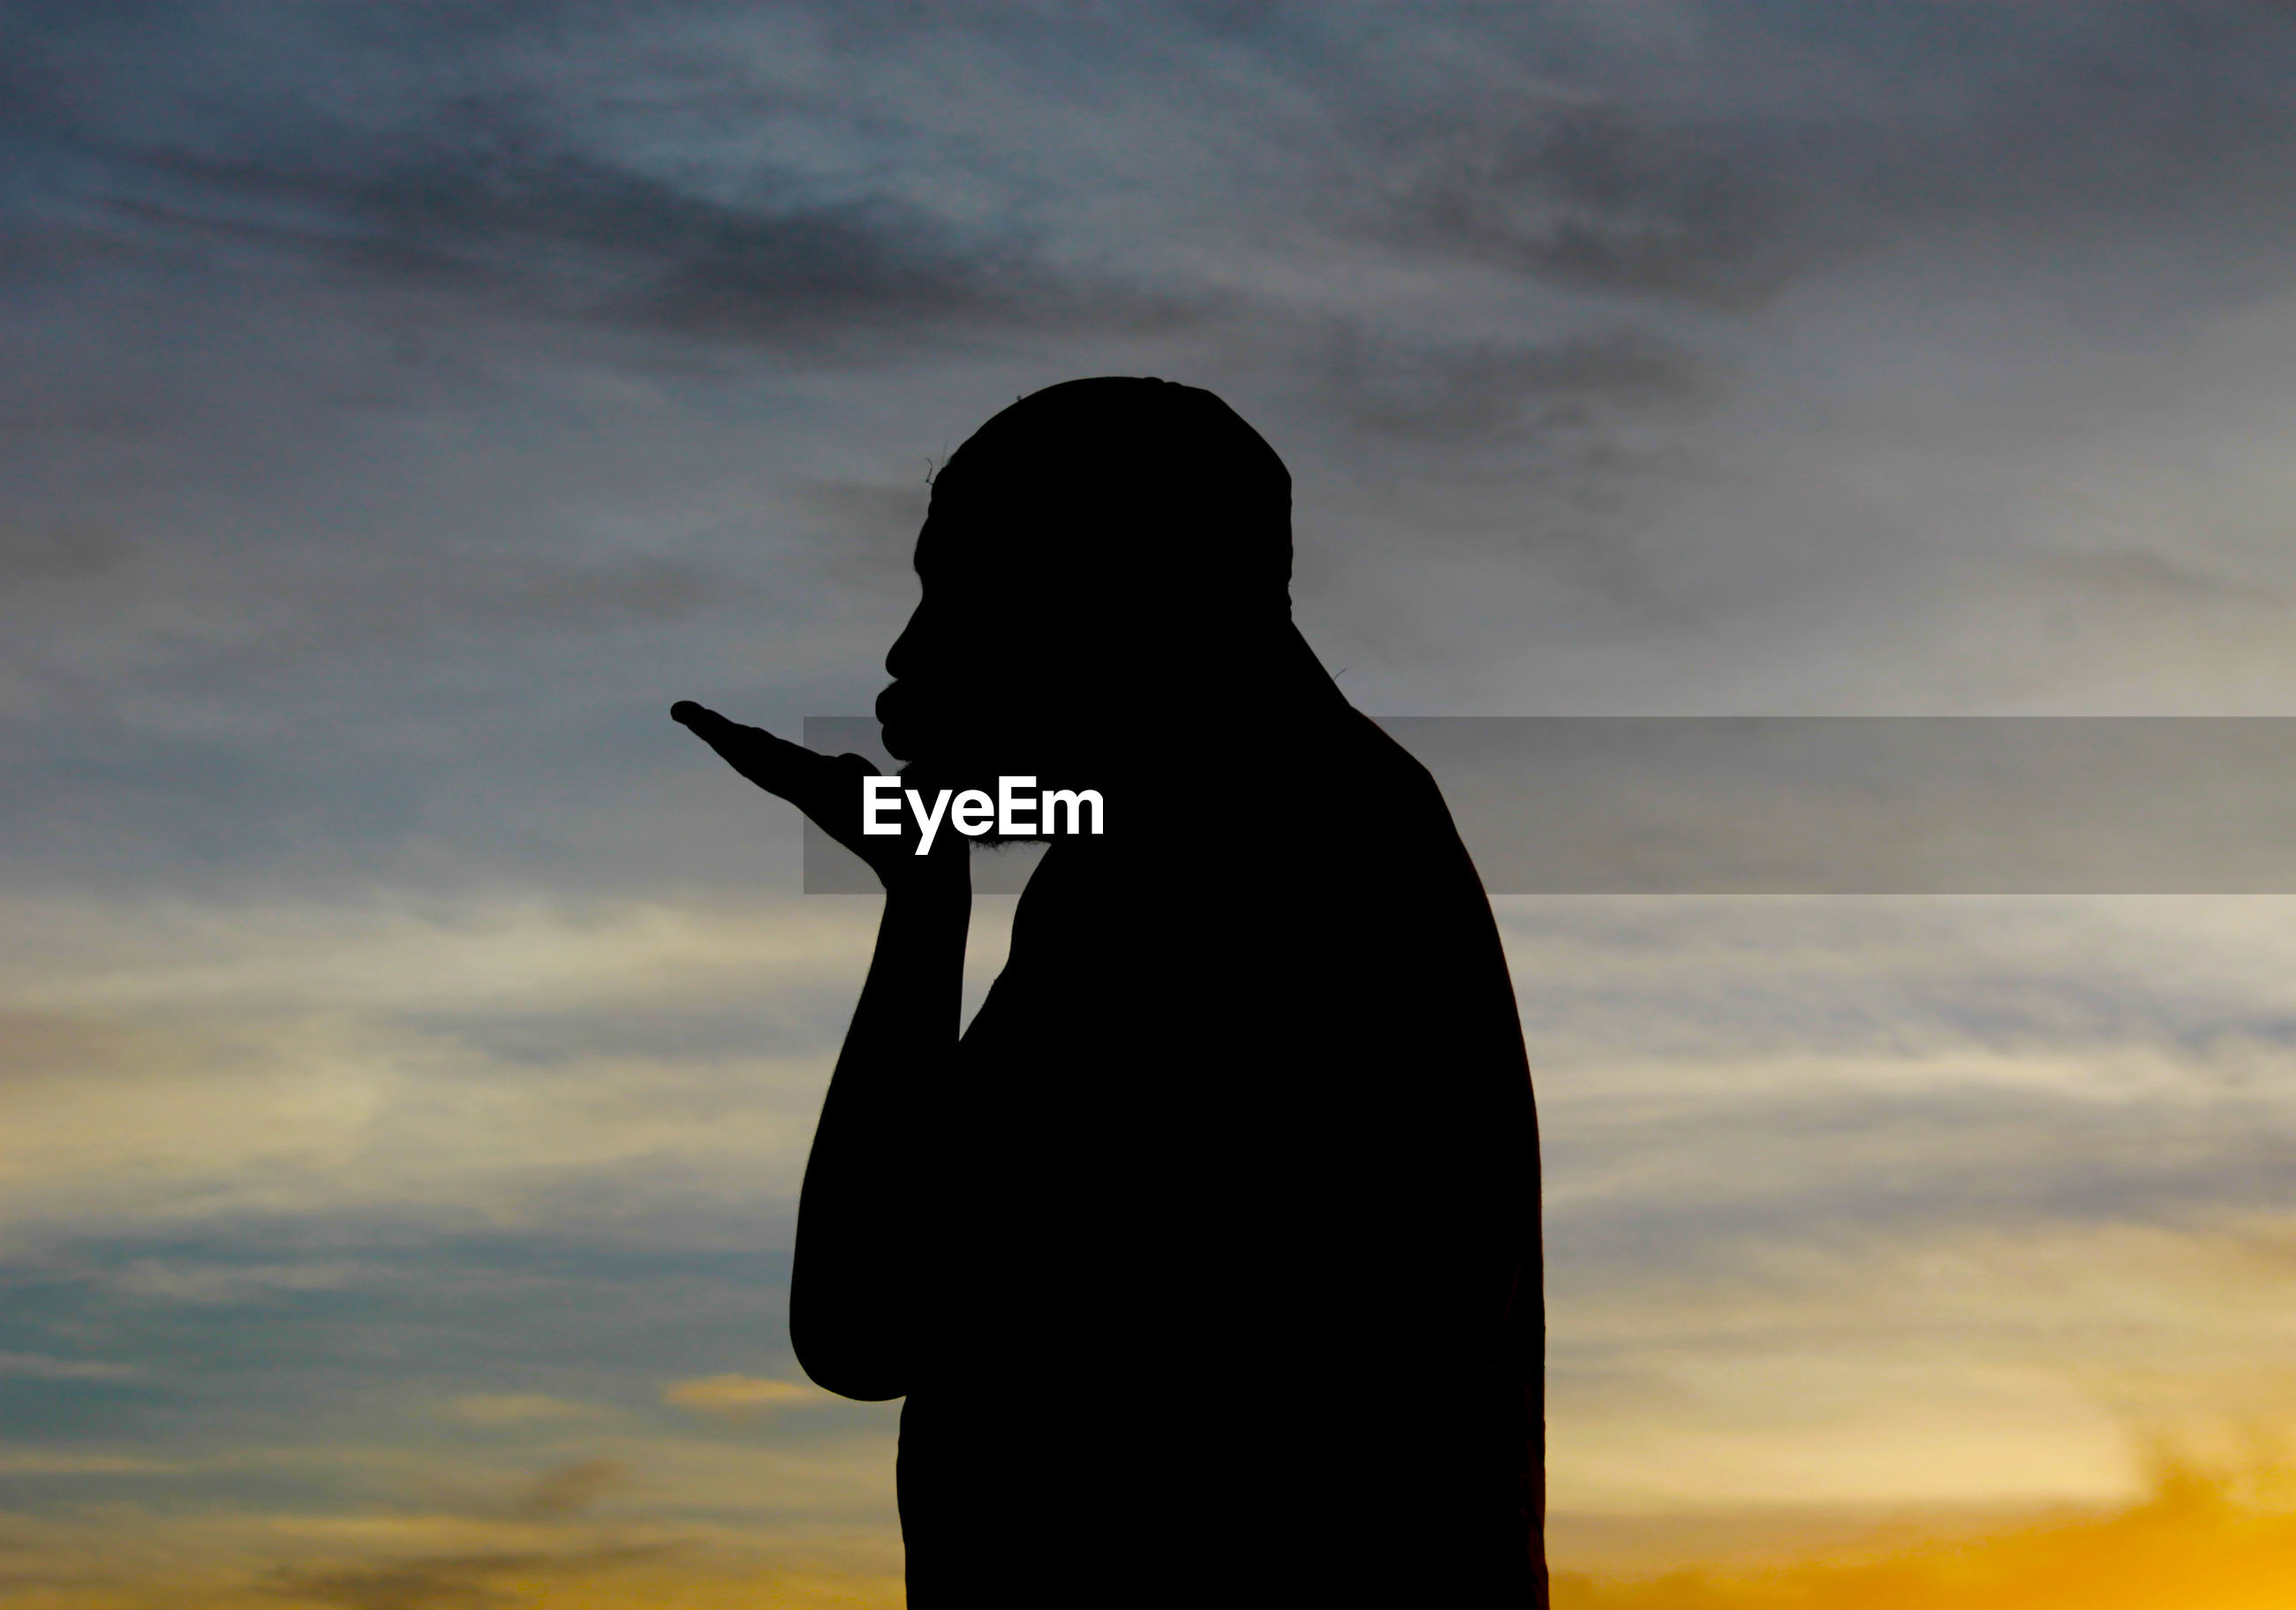 Silhouette of a man against cloudy sky at sunset